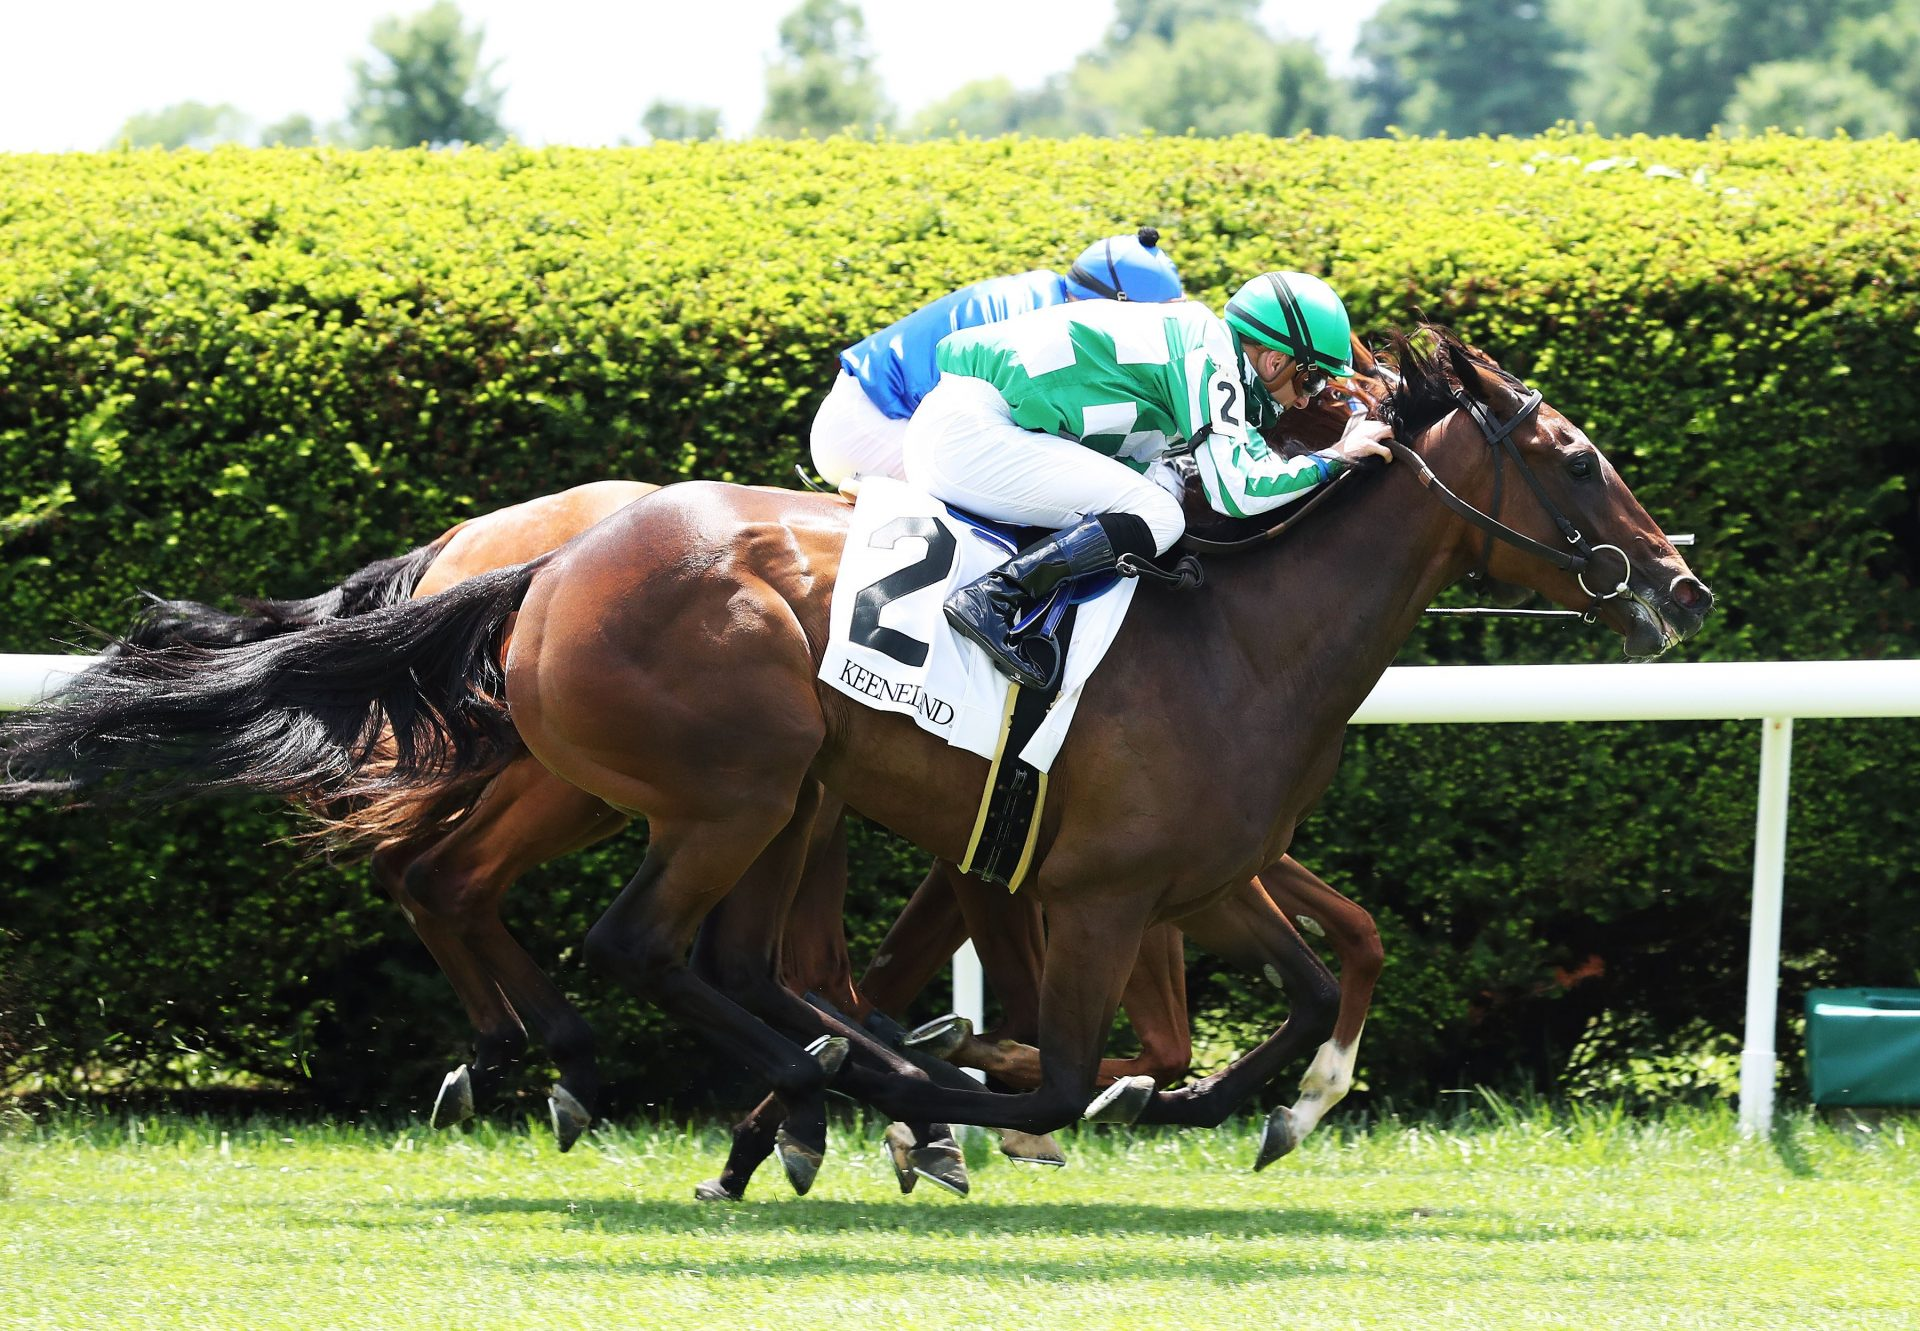 Enola Gay (Uncle Mo) Winning Gr.2 Appalachian Stakes at Keeneland